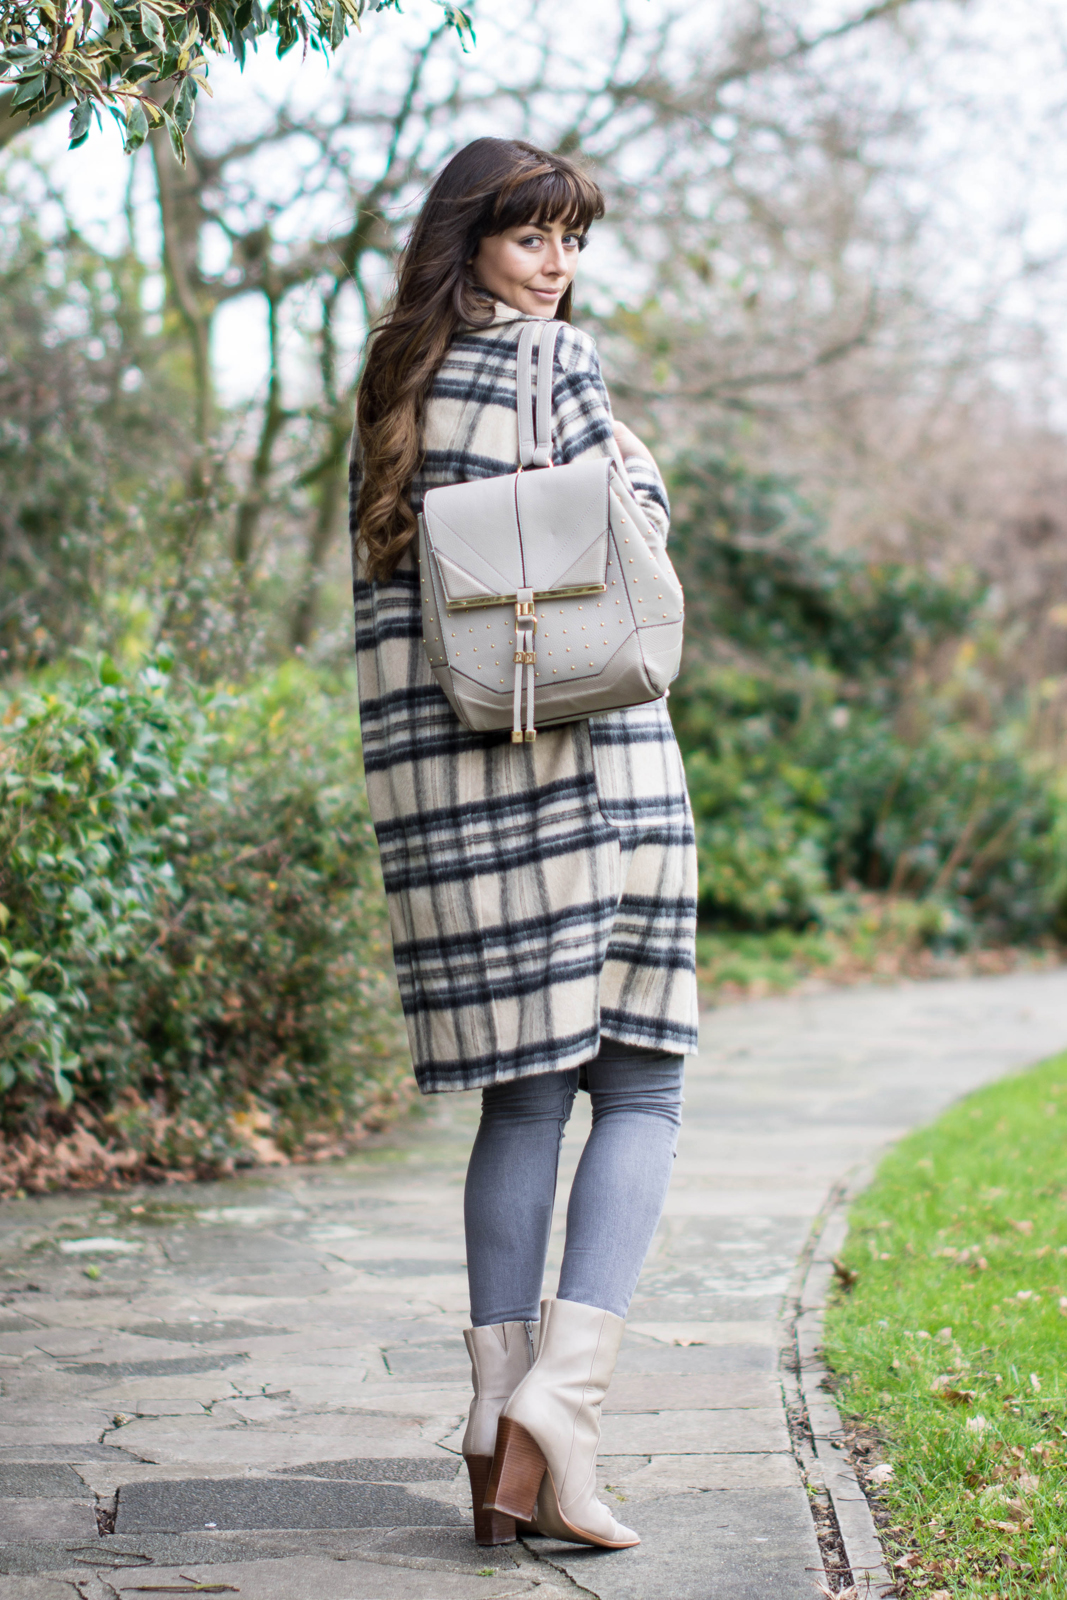 EJSTYLE - River Island brushed check coat, grey skinny jeans, taupe M&S boots with pointed toe, Grey backpack rucksack, Winter OOTD